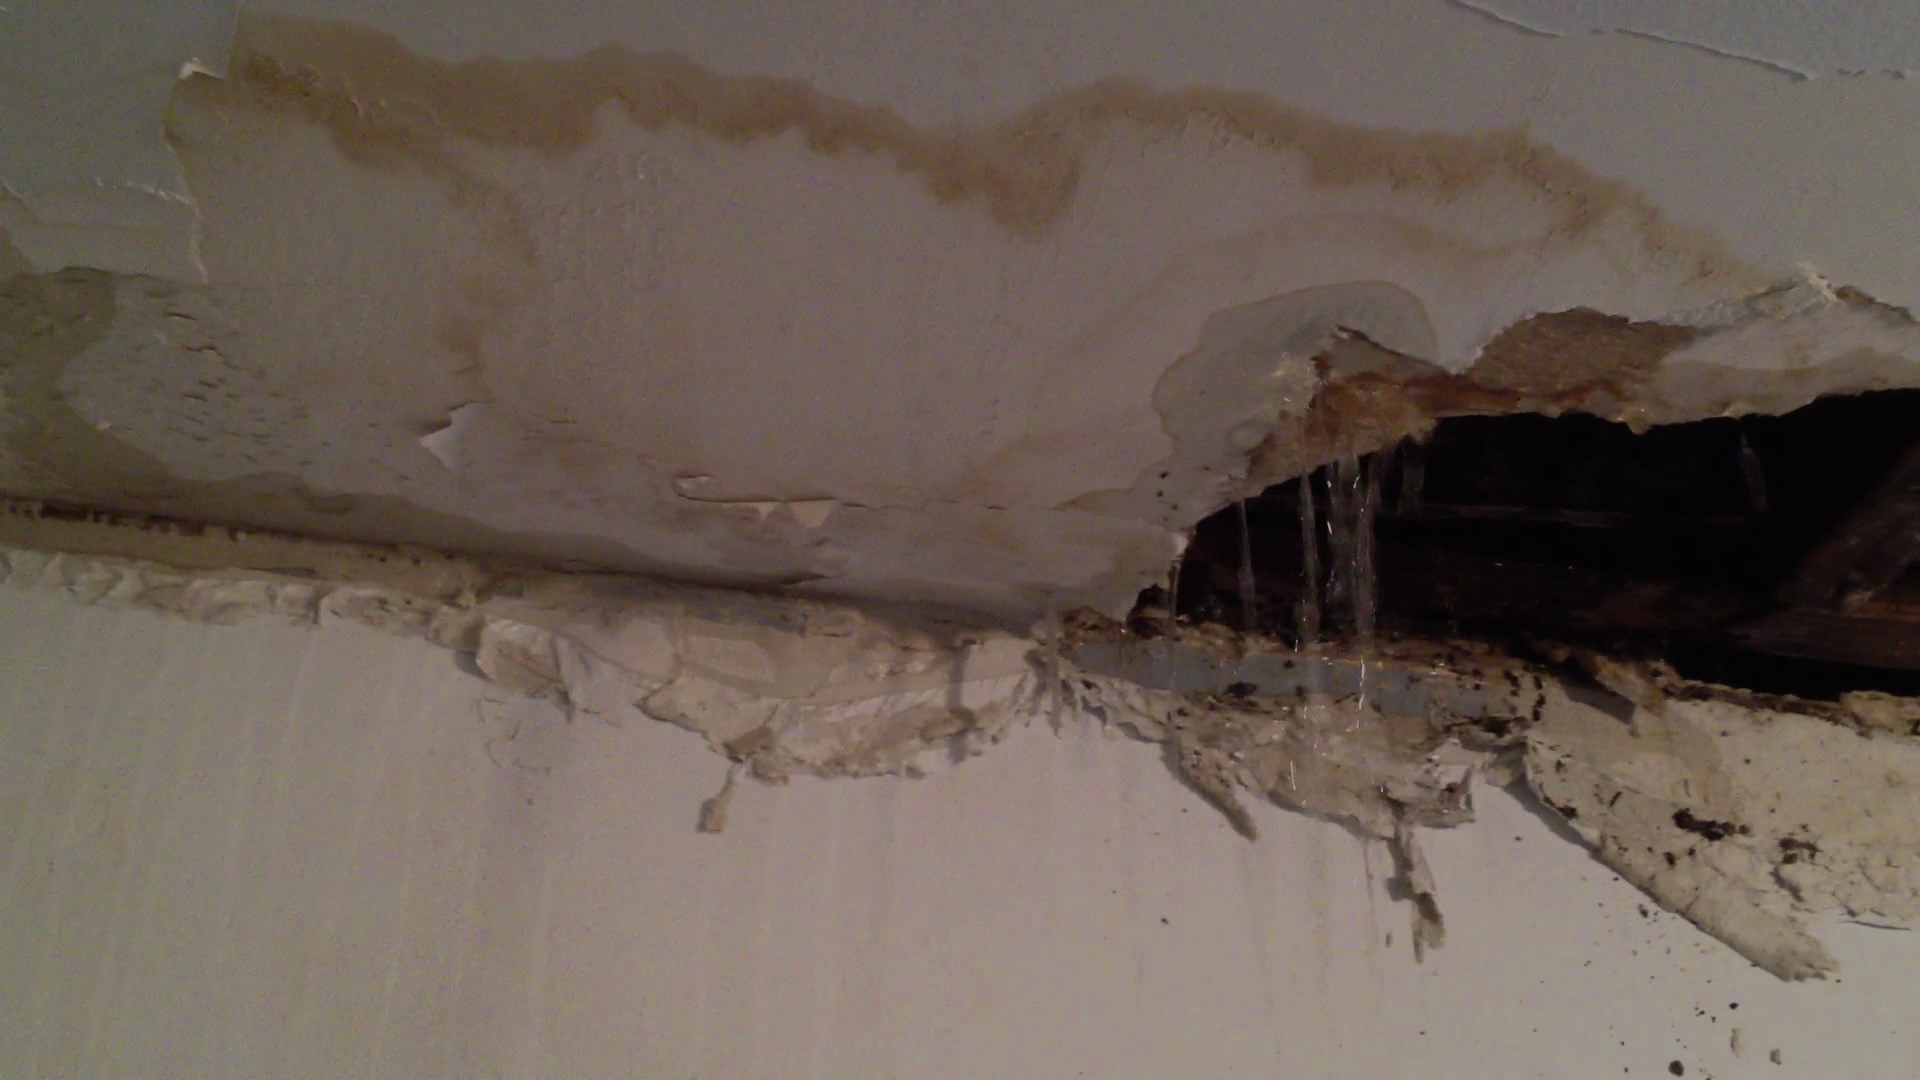 Celling Leakage